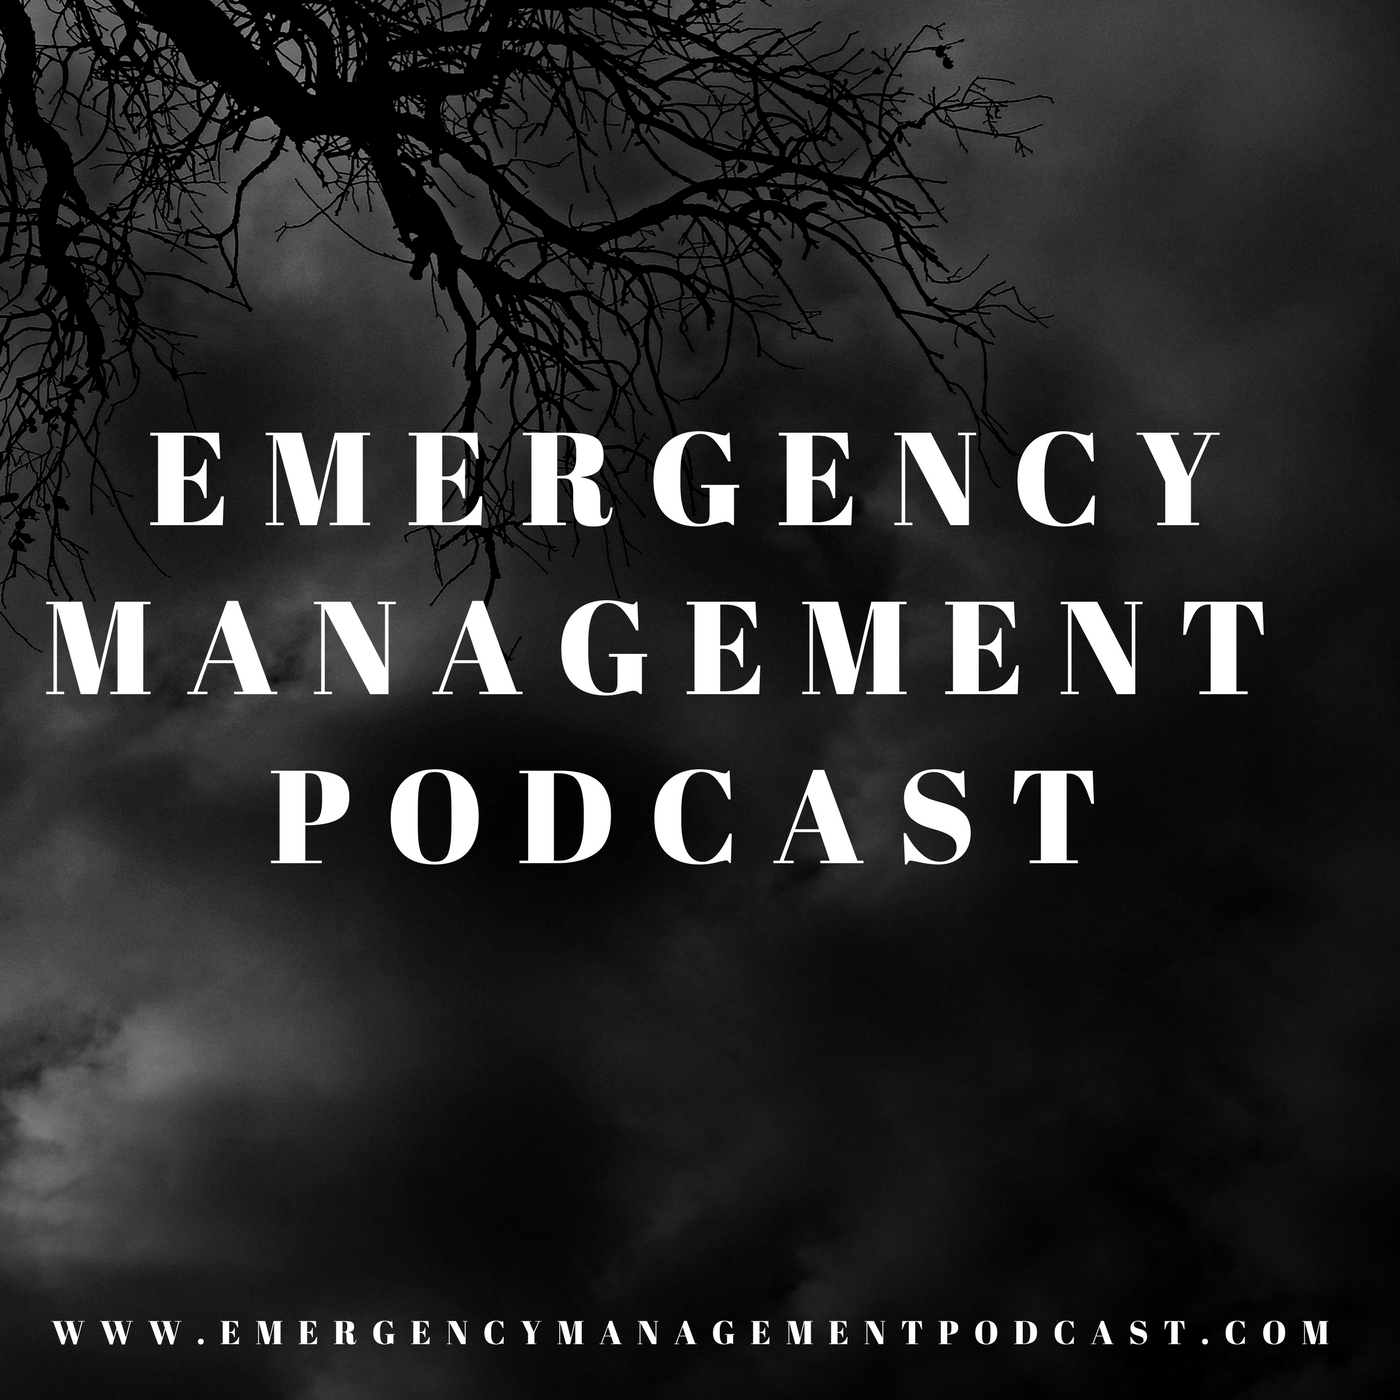 Emergency Management Podcast